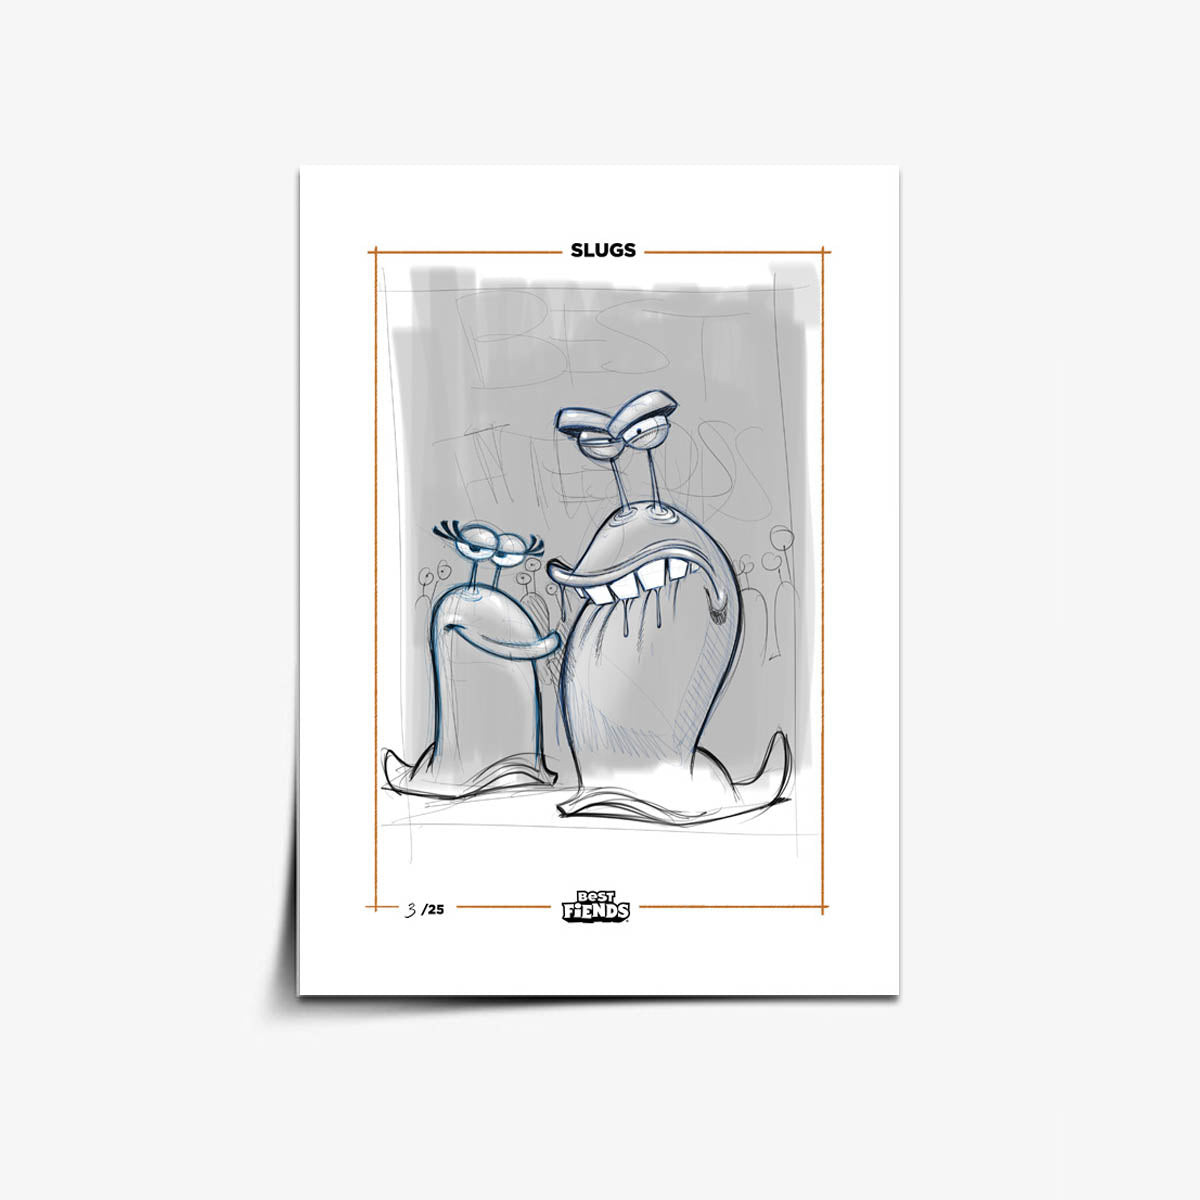 Limited Edition Signed Giclée Prints